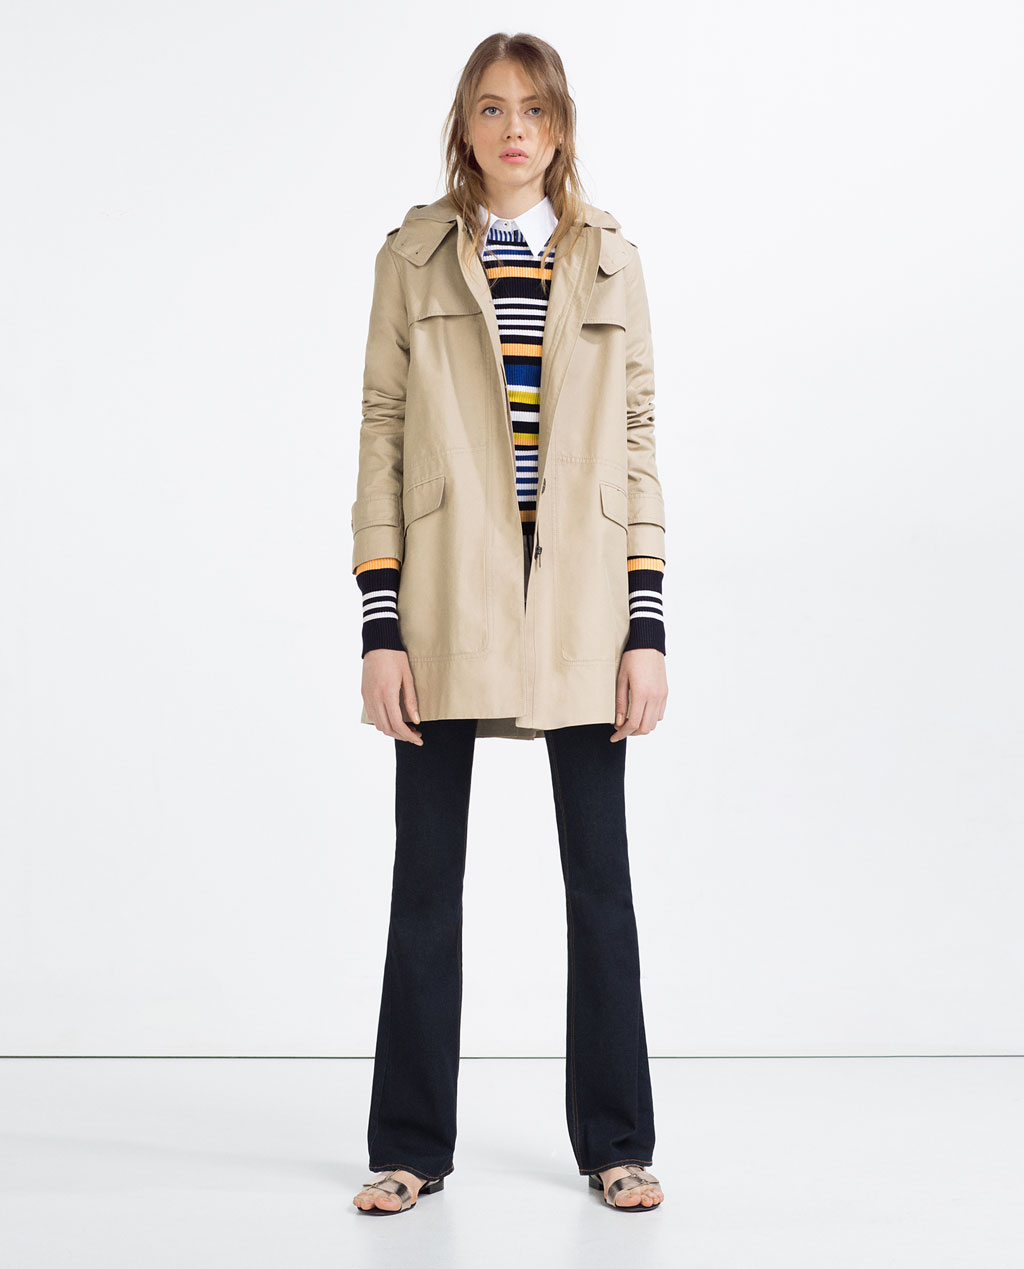 ZARA WATER REPELLENT TRENCH COAT $99.90